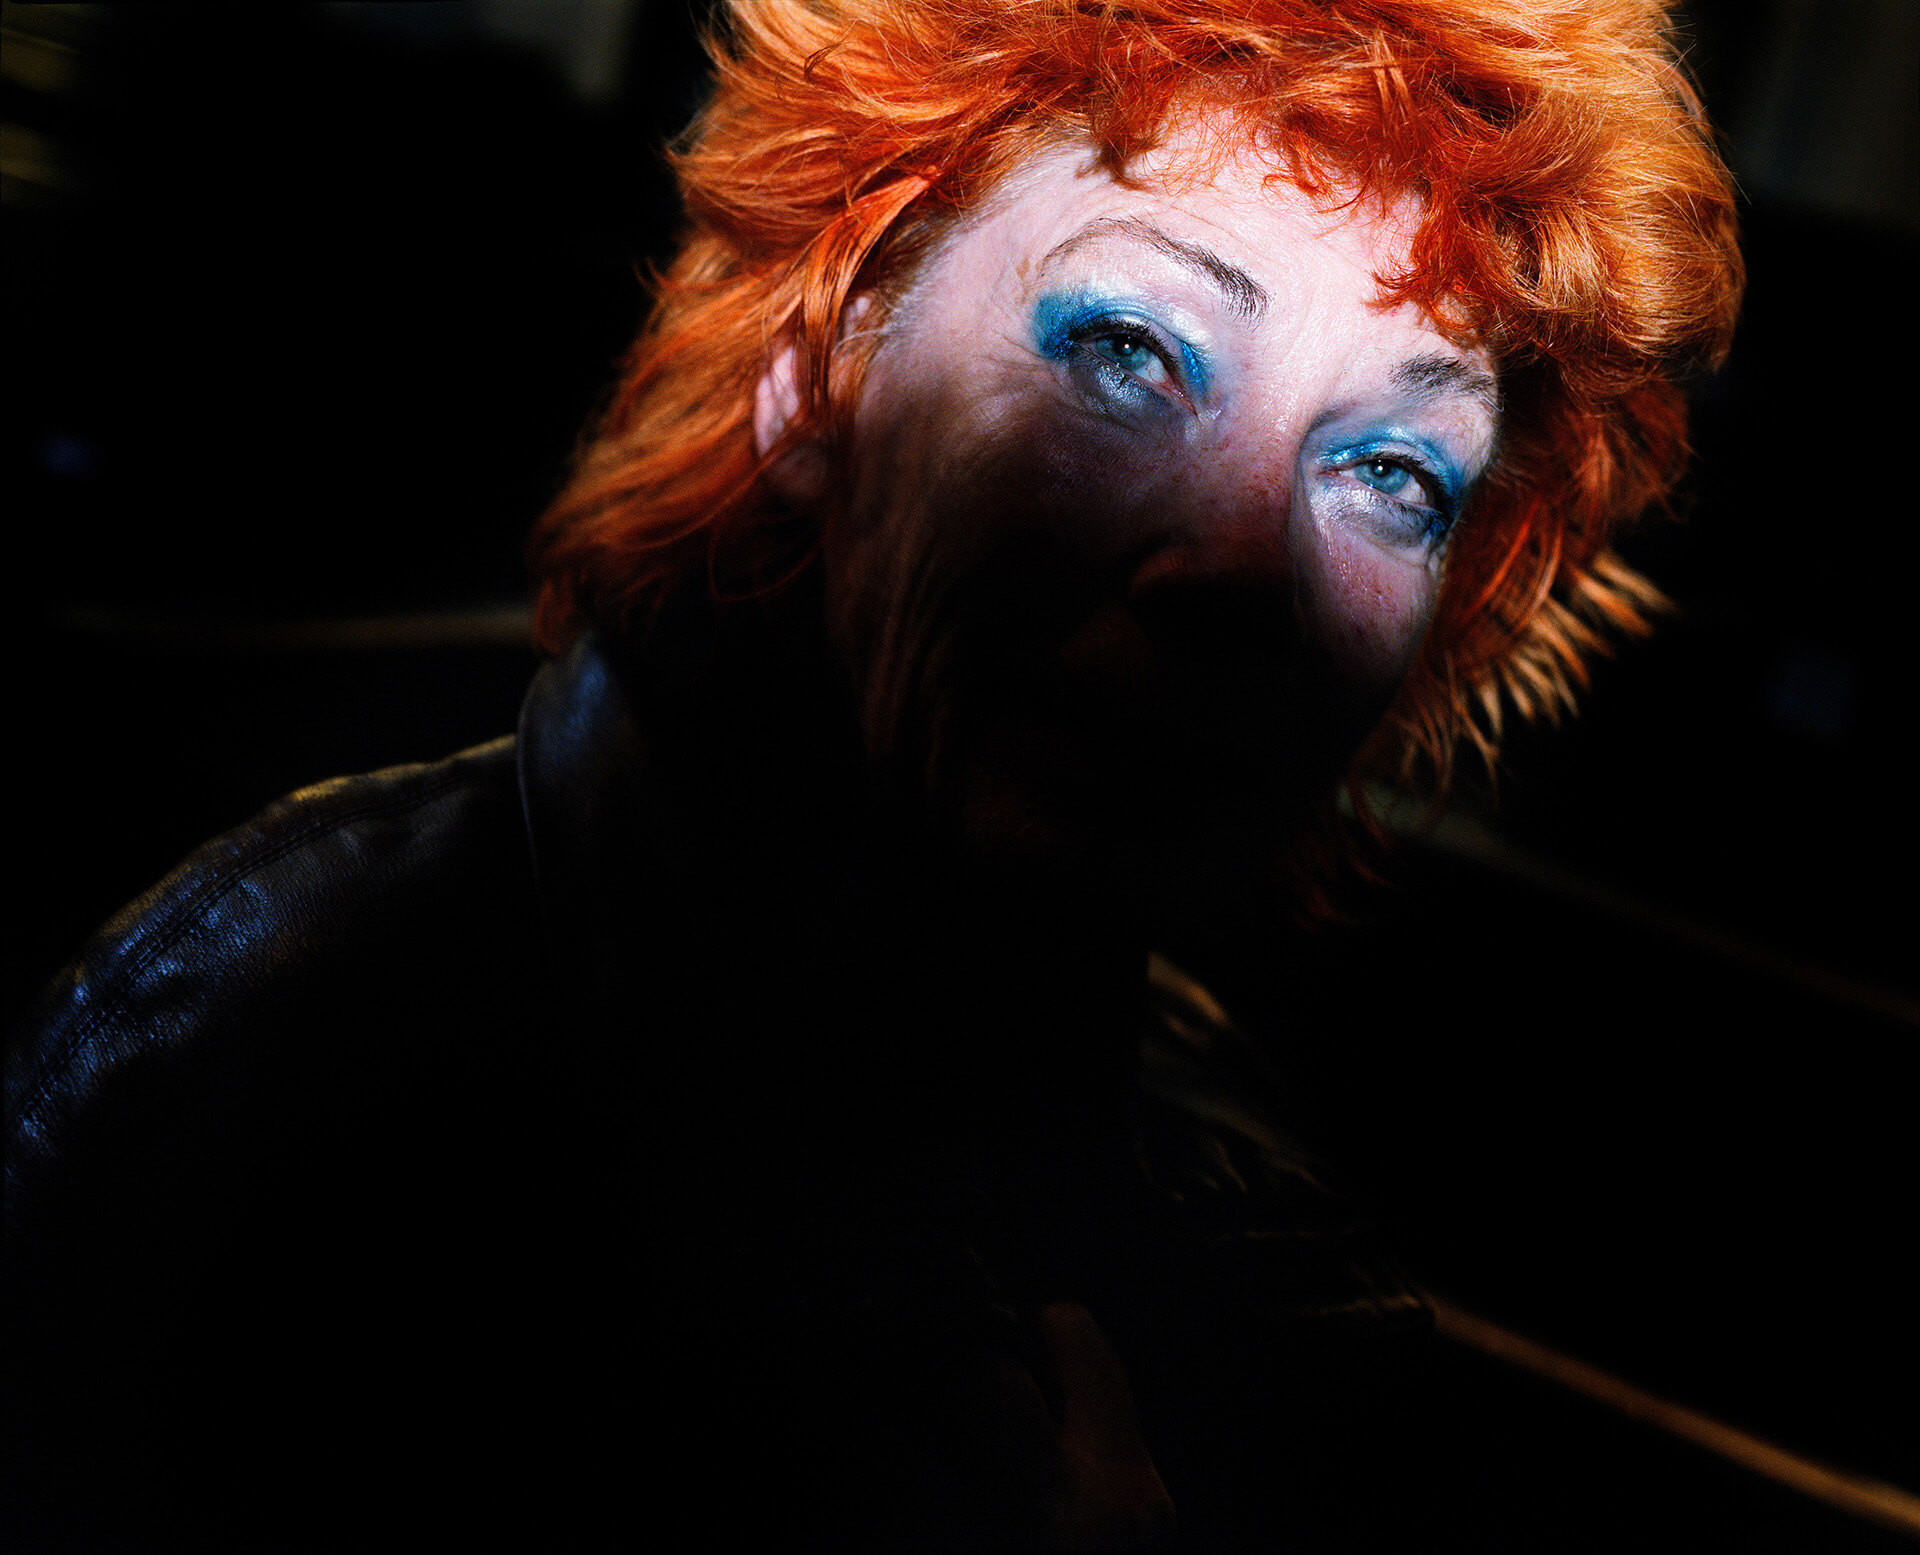 Piotr Karpinski the south west collective of photography ginger women with blue makeup in darkness